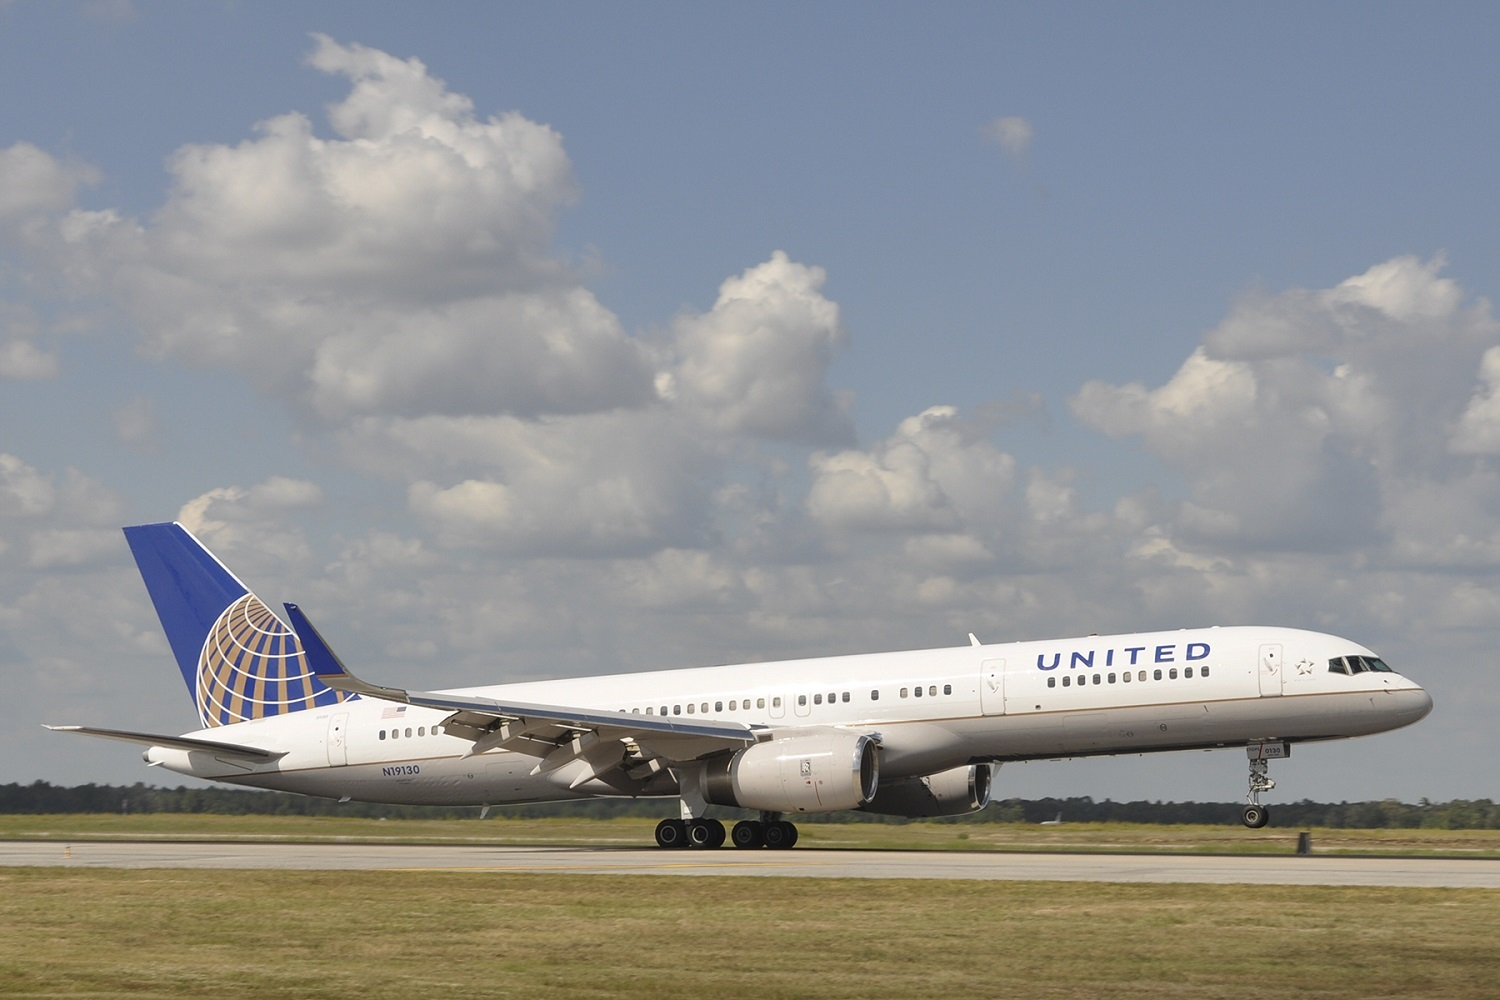 United P.S. 757 Takeoff